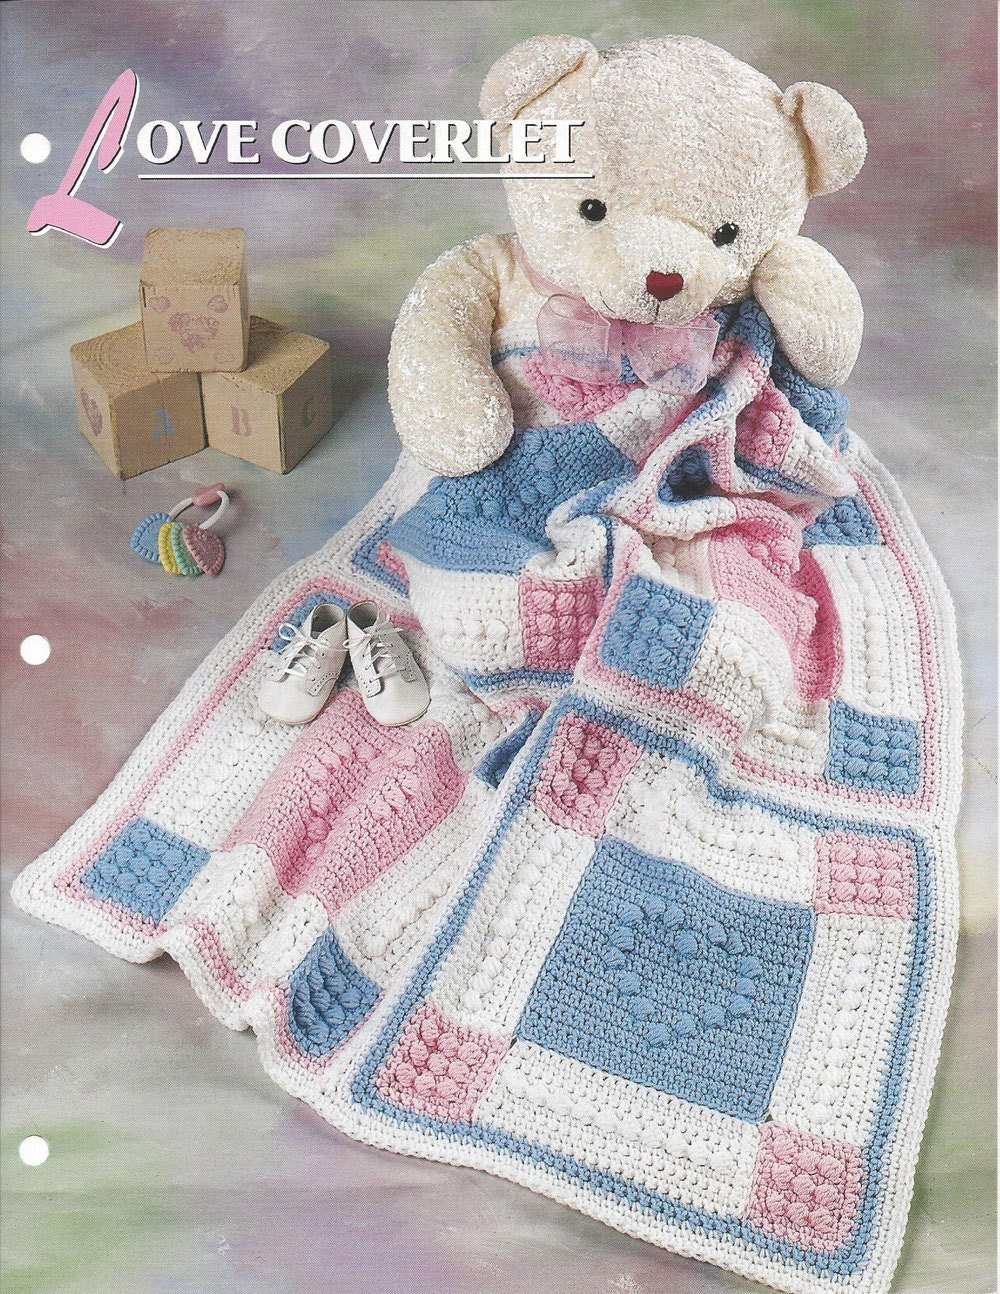 Crochet Afghan Patterns Quilt : Love Coverlet Afghan Baby Pattern Annies Crochet Quilt